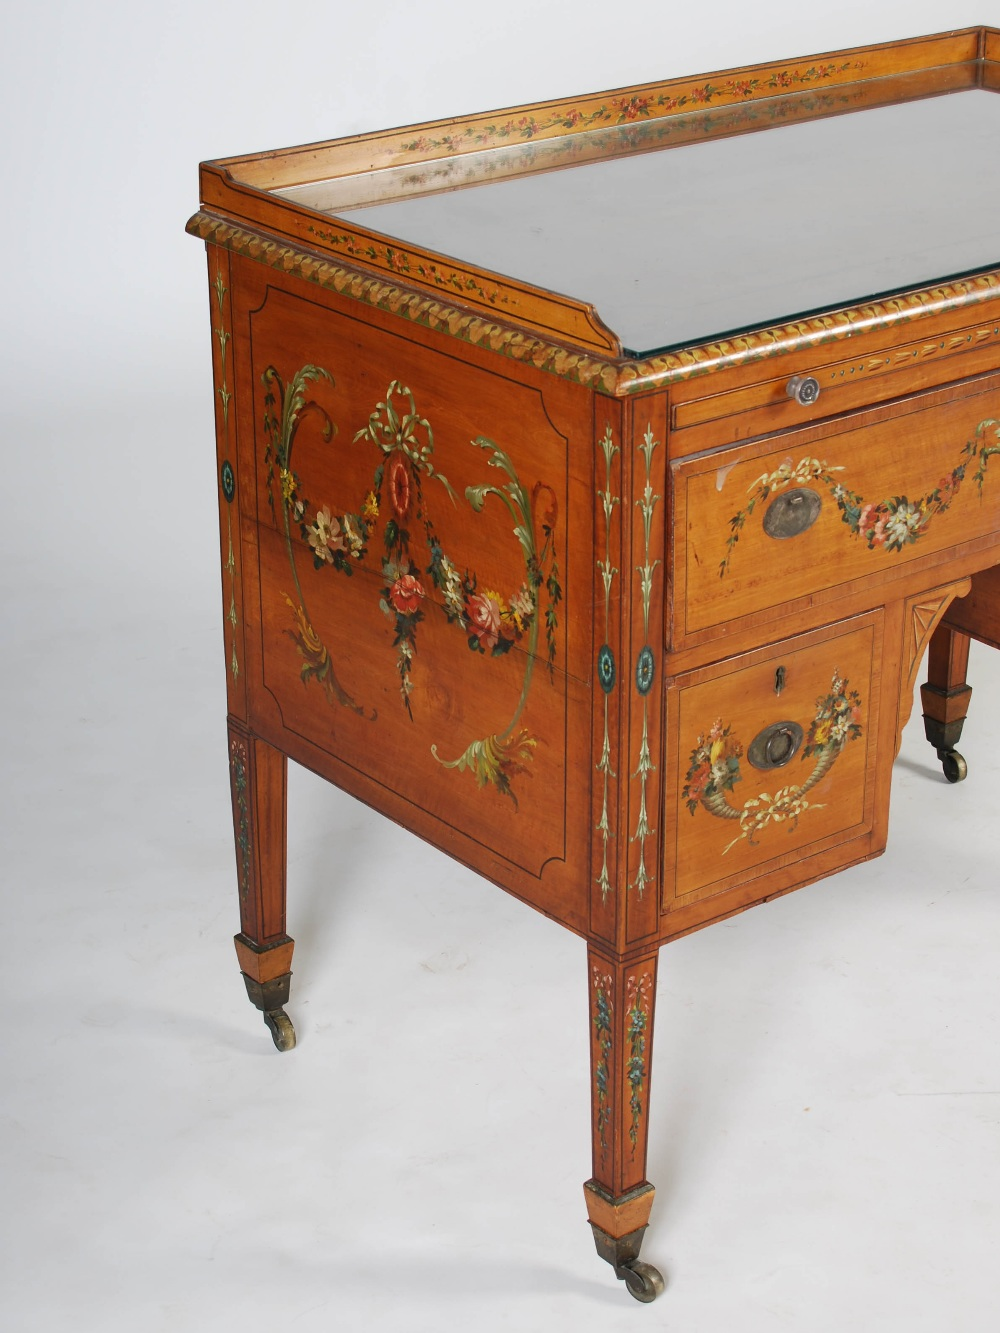 Lot 14 - A 19th century painted satinwood wash stand, the rectangular top with three quarter gallery above